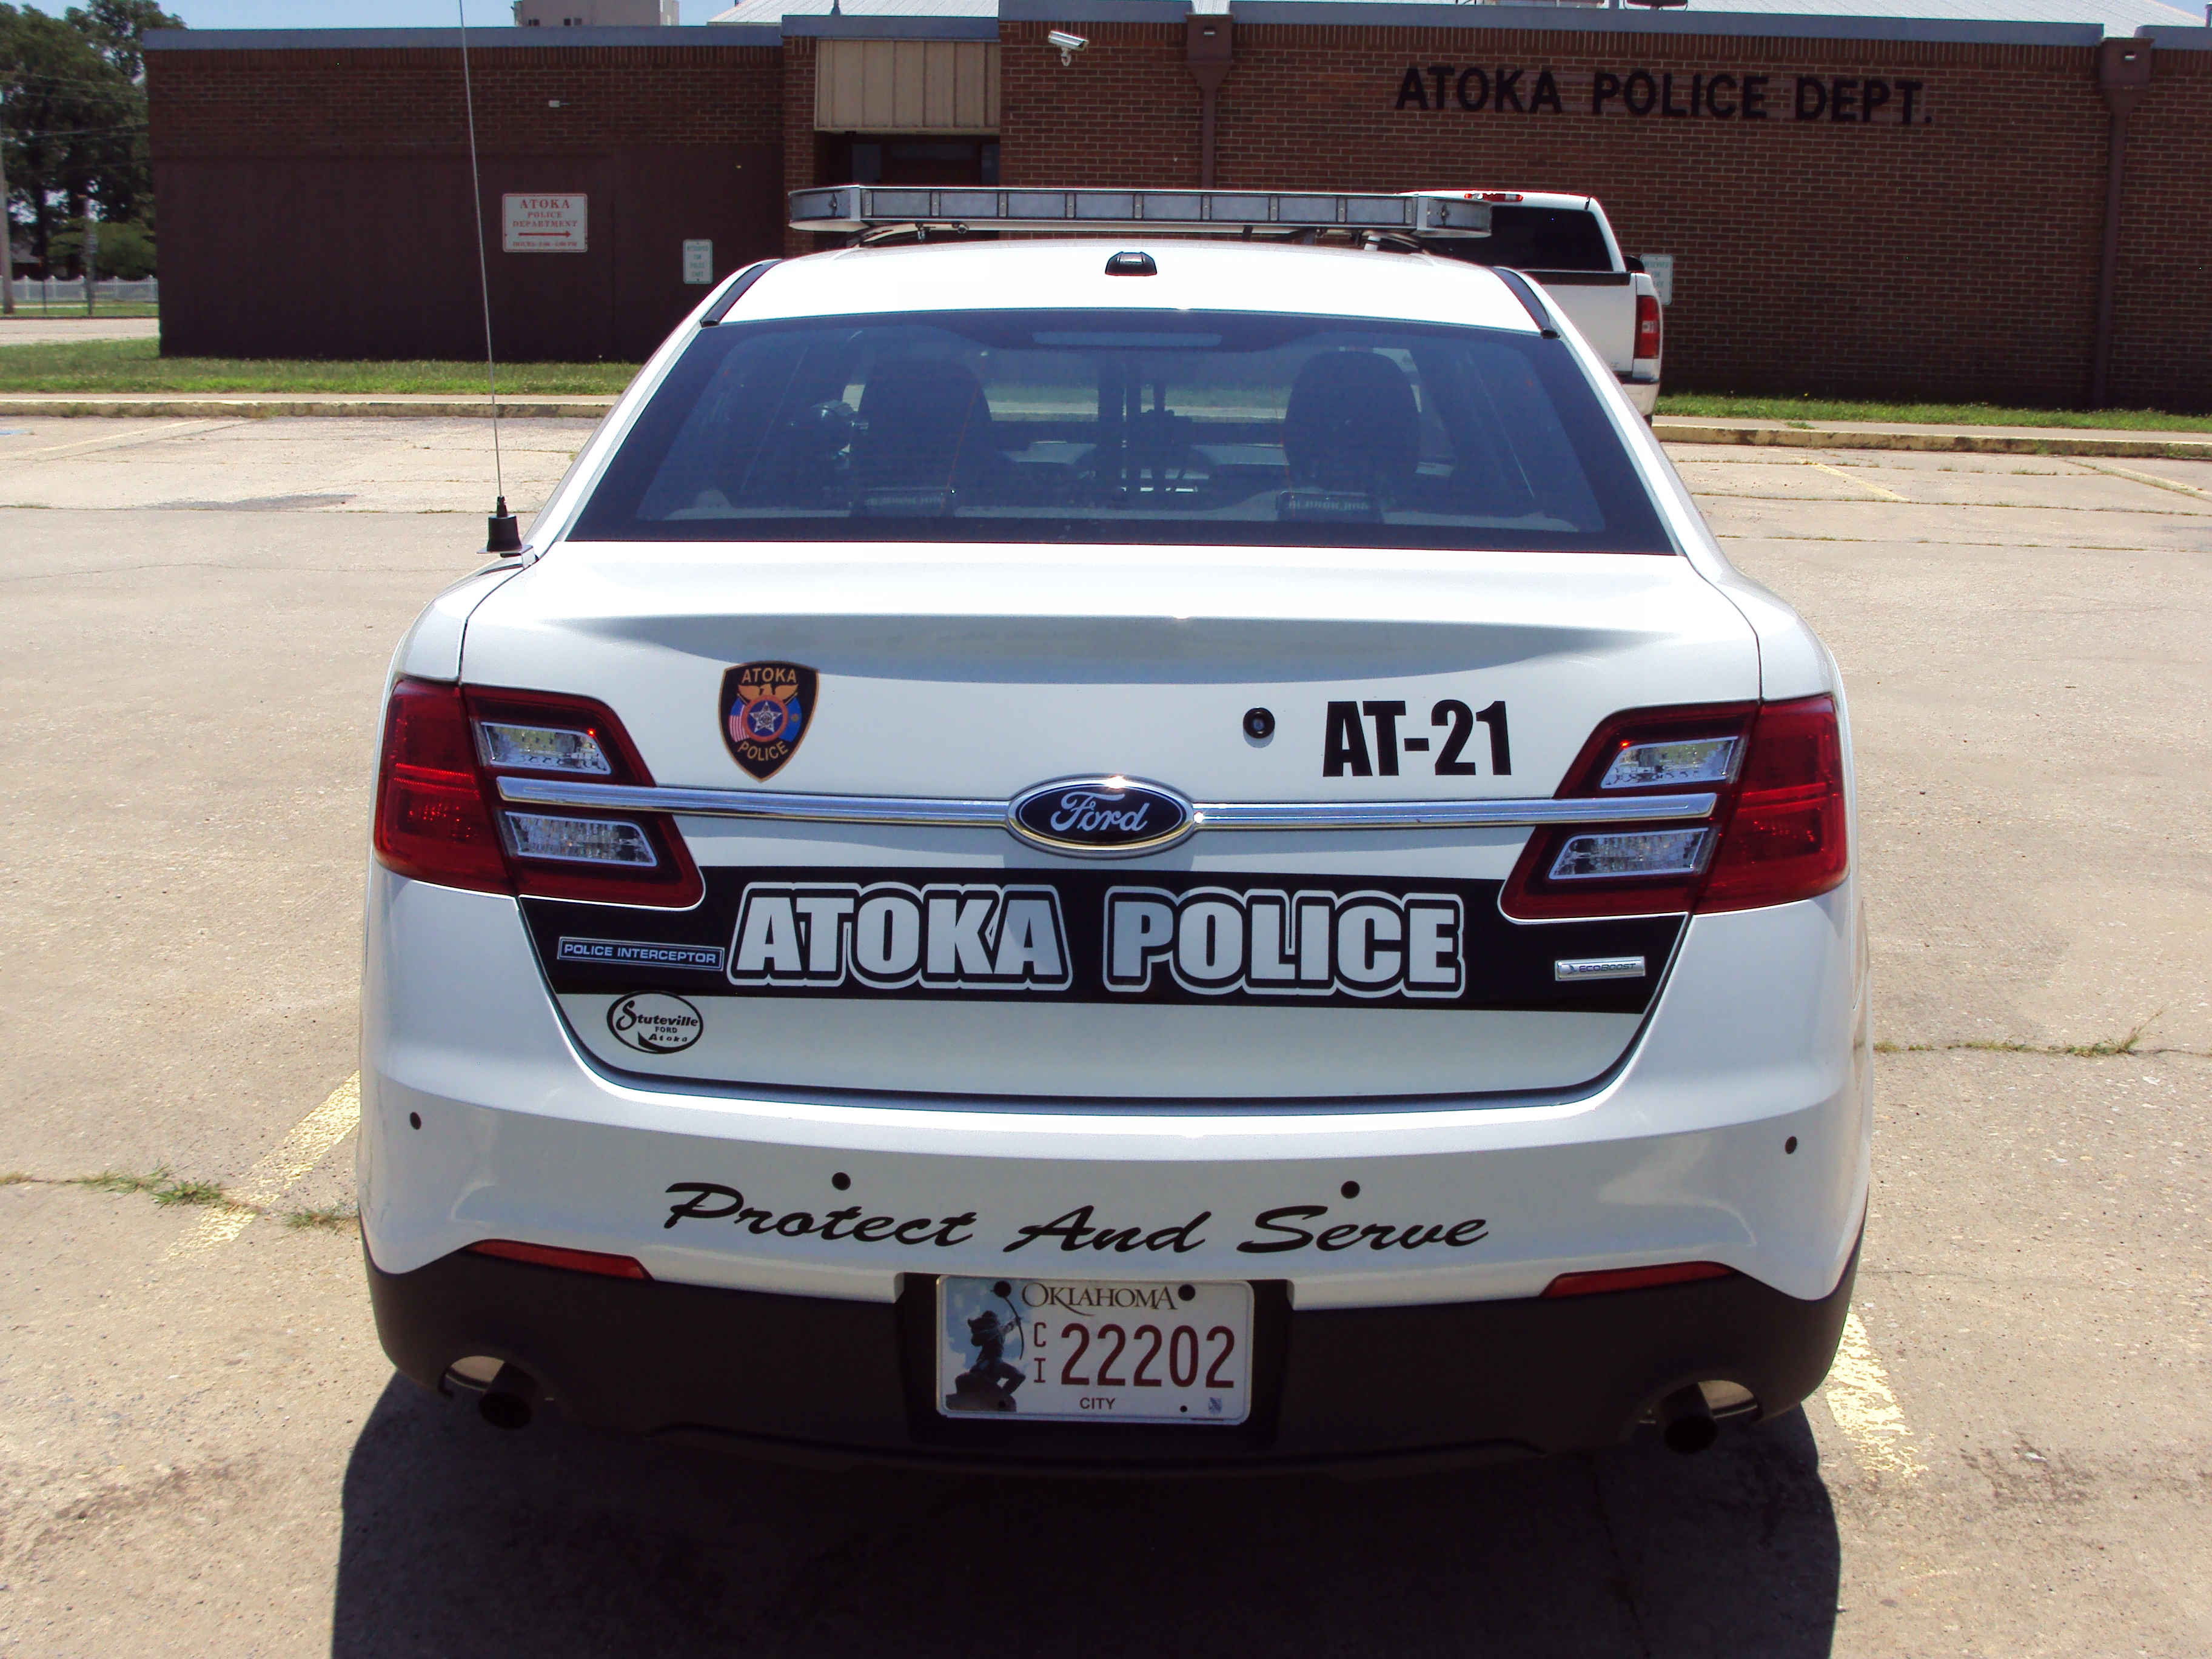 Police Car Website >> Police Atoka Ok Official Website